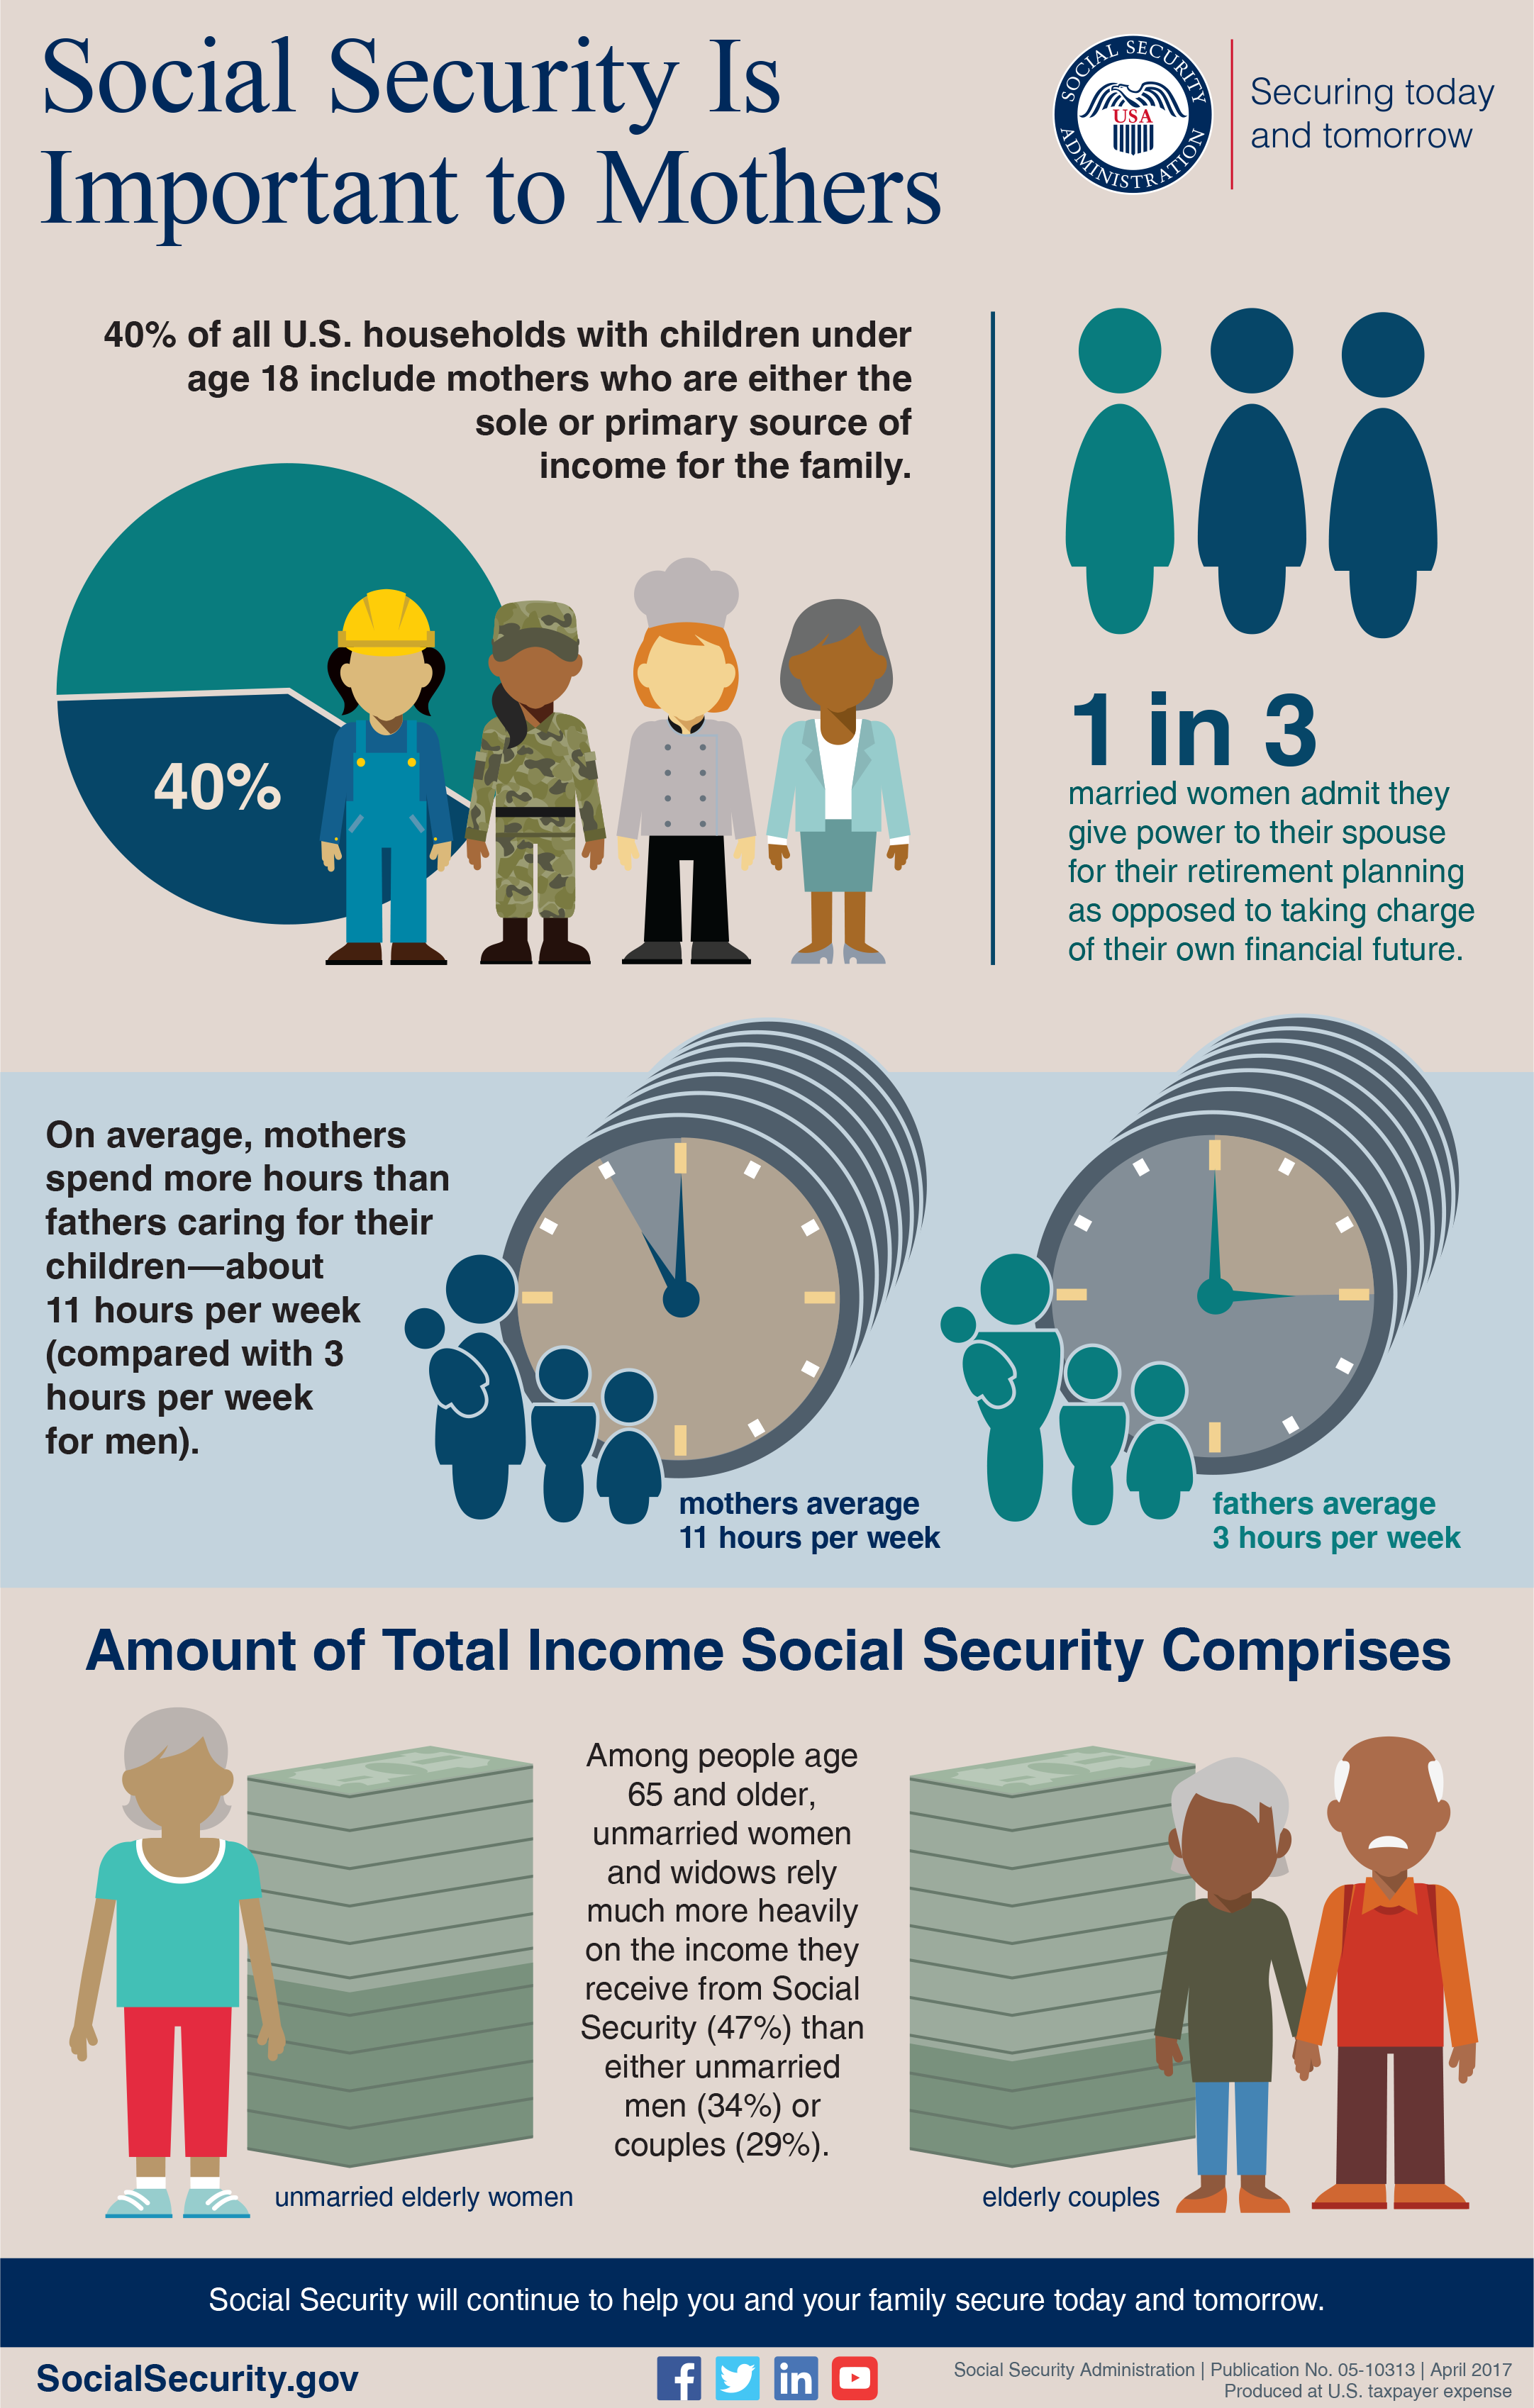 Social Security Is Important to Mothers, S S A Publication 05-10313, Infographic